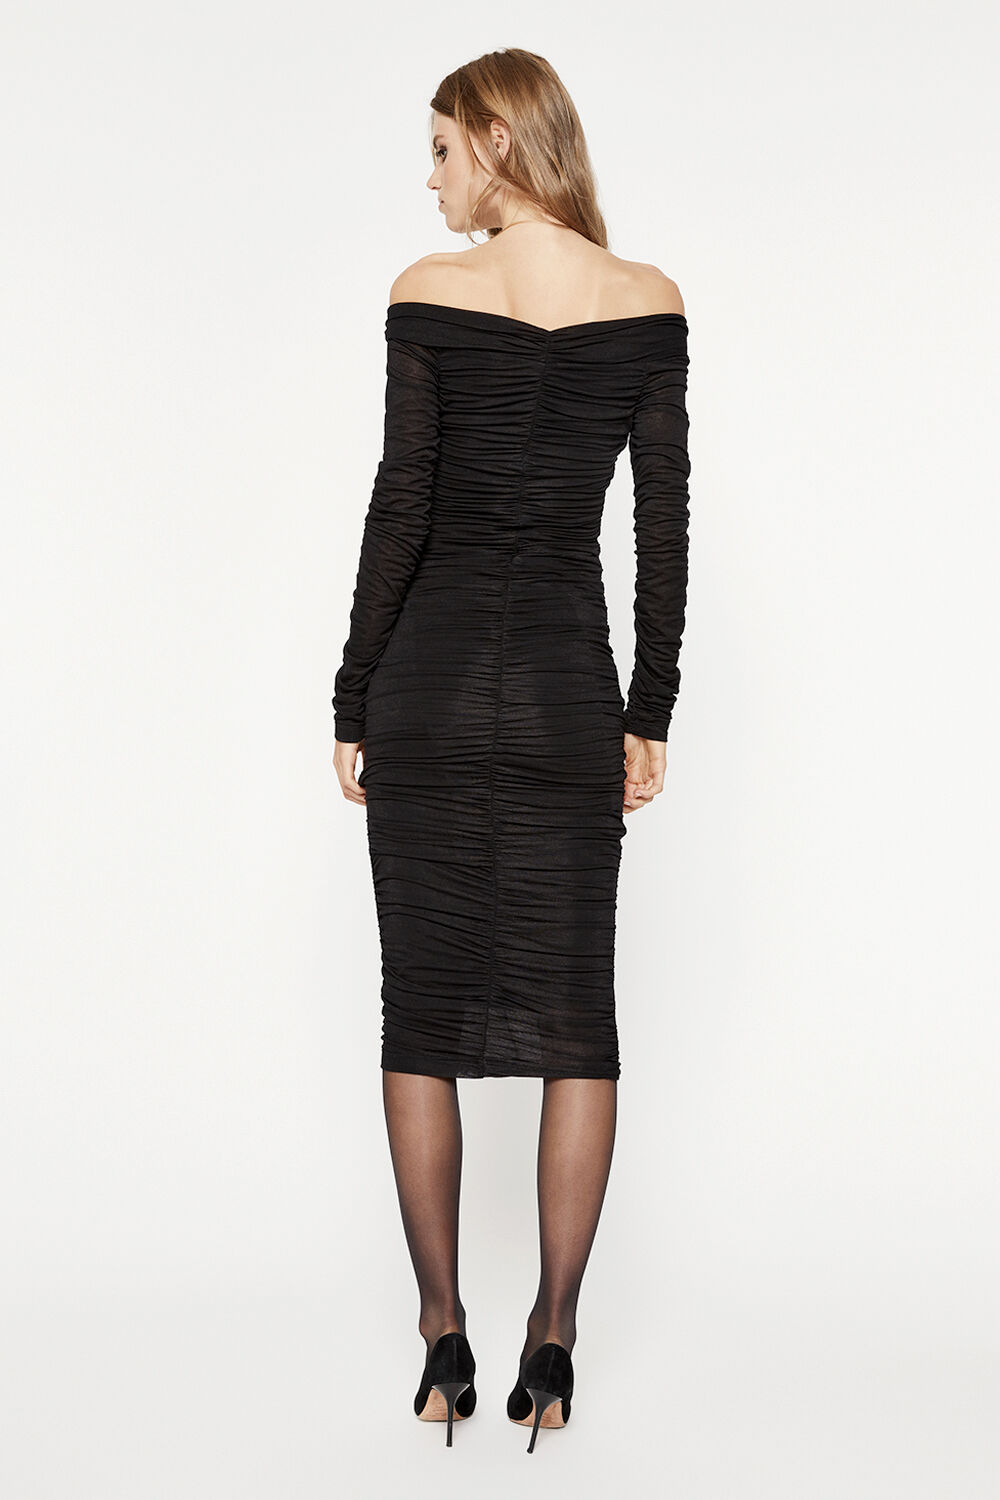 RUCHED DETAIL MIDI DRESS in colour CAVIAR